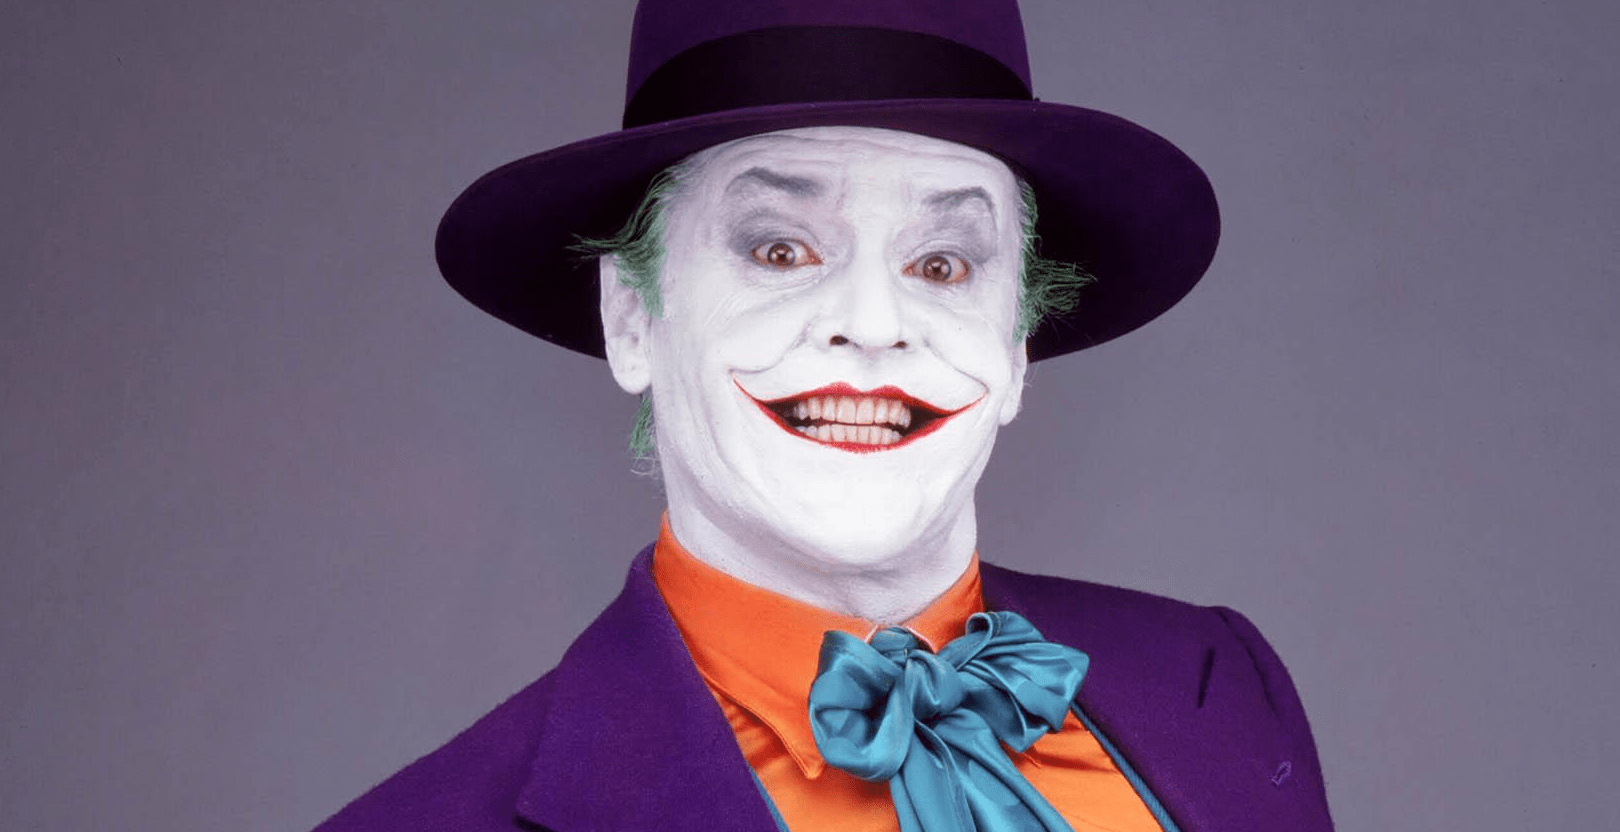 Warner Bros. Wants Leonardo DiCaprio for Joker Origin Movie